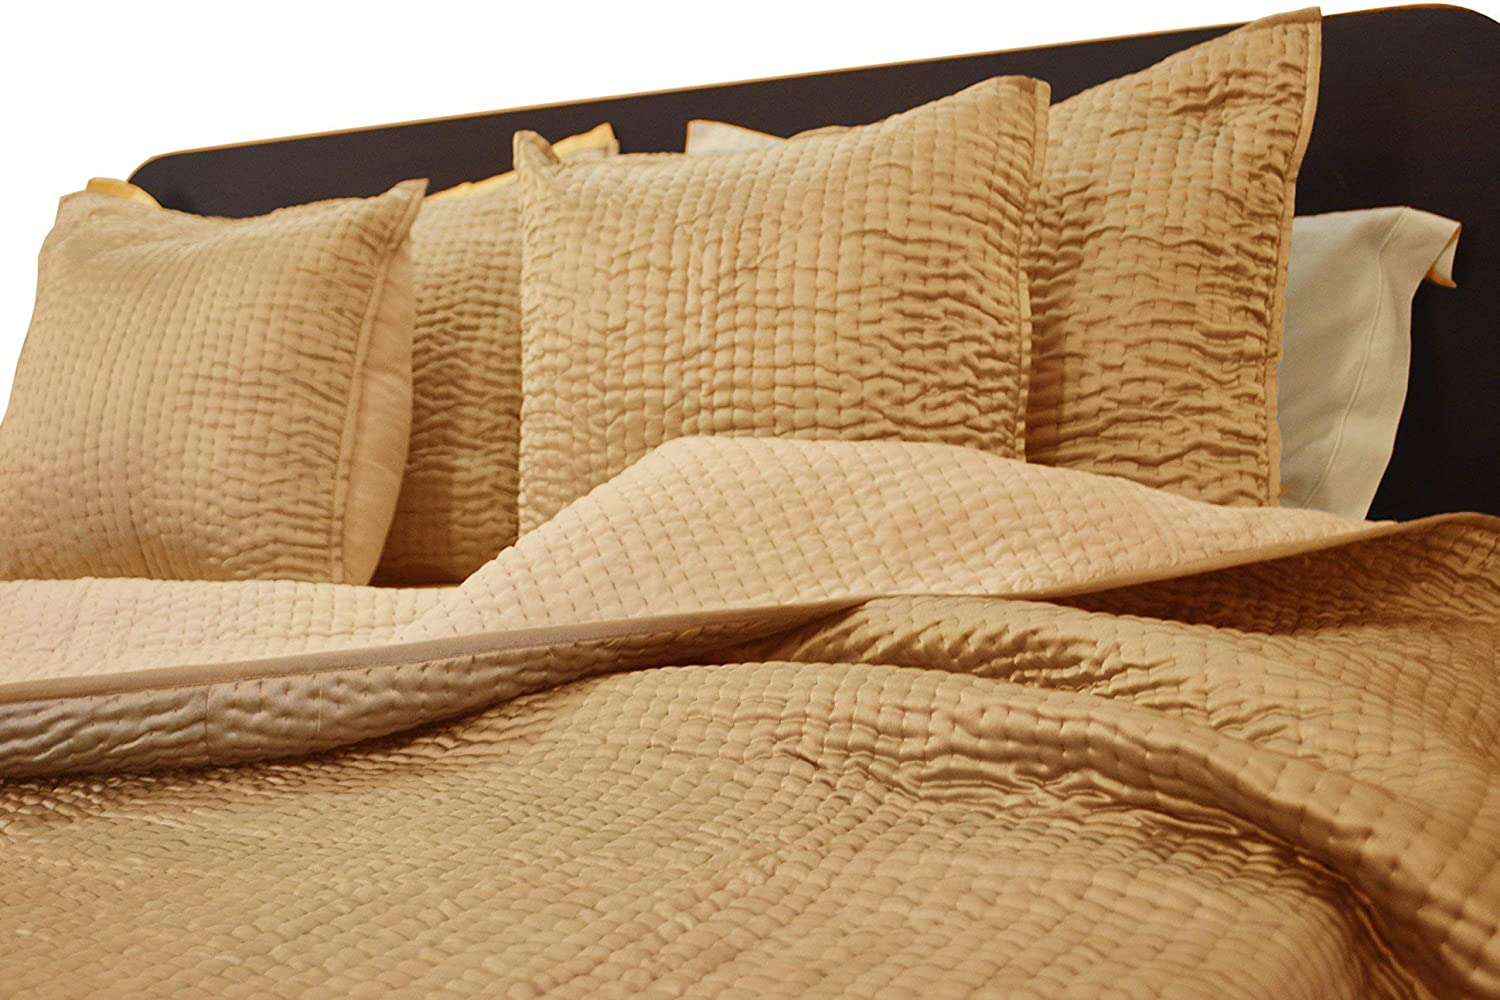 Image of Luxe Beige Satin Channel Quilted Bedspread, Pick Stitch Light Quilt, Luxury Valentines Day Gift Home and Kitchen